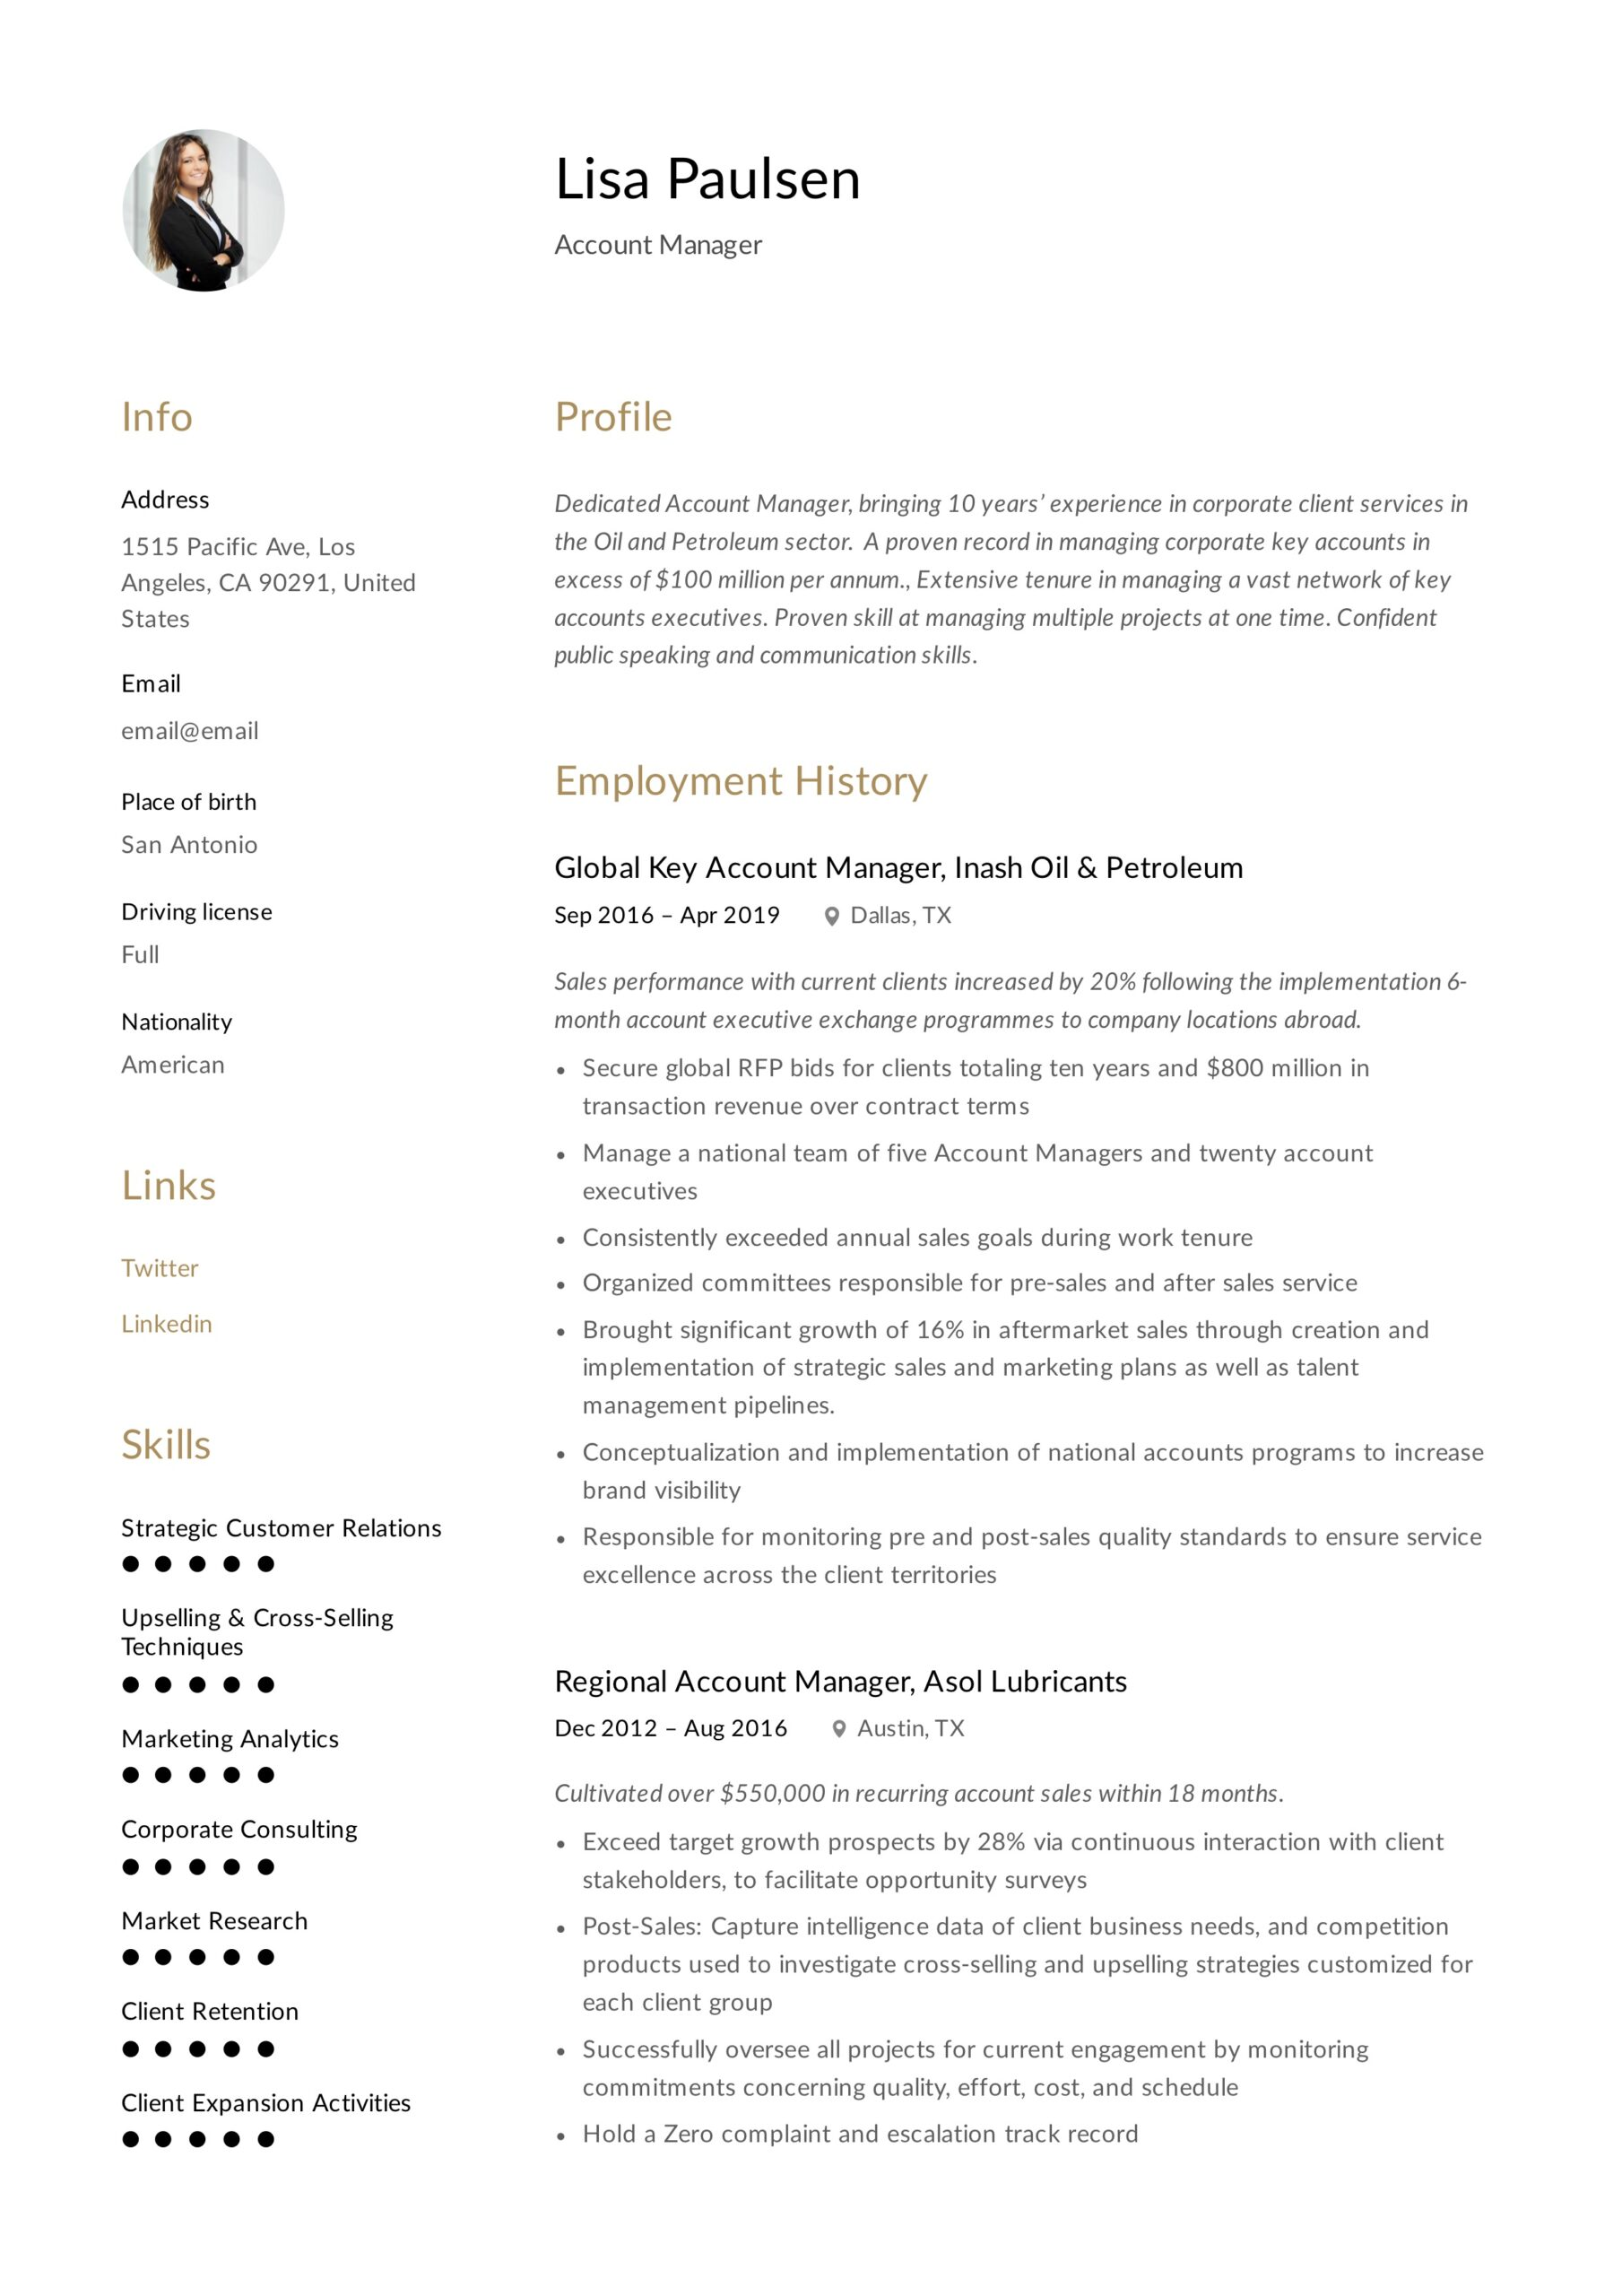 account manager resume writing guide examples technology lisa paulsen rite aid shift Resume Technology Account Manager Resume